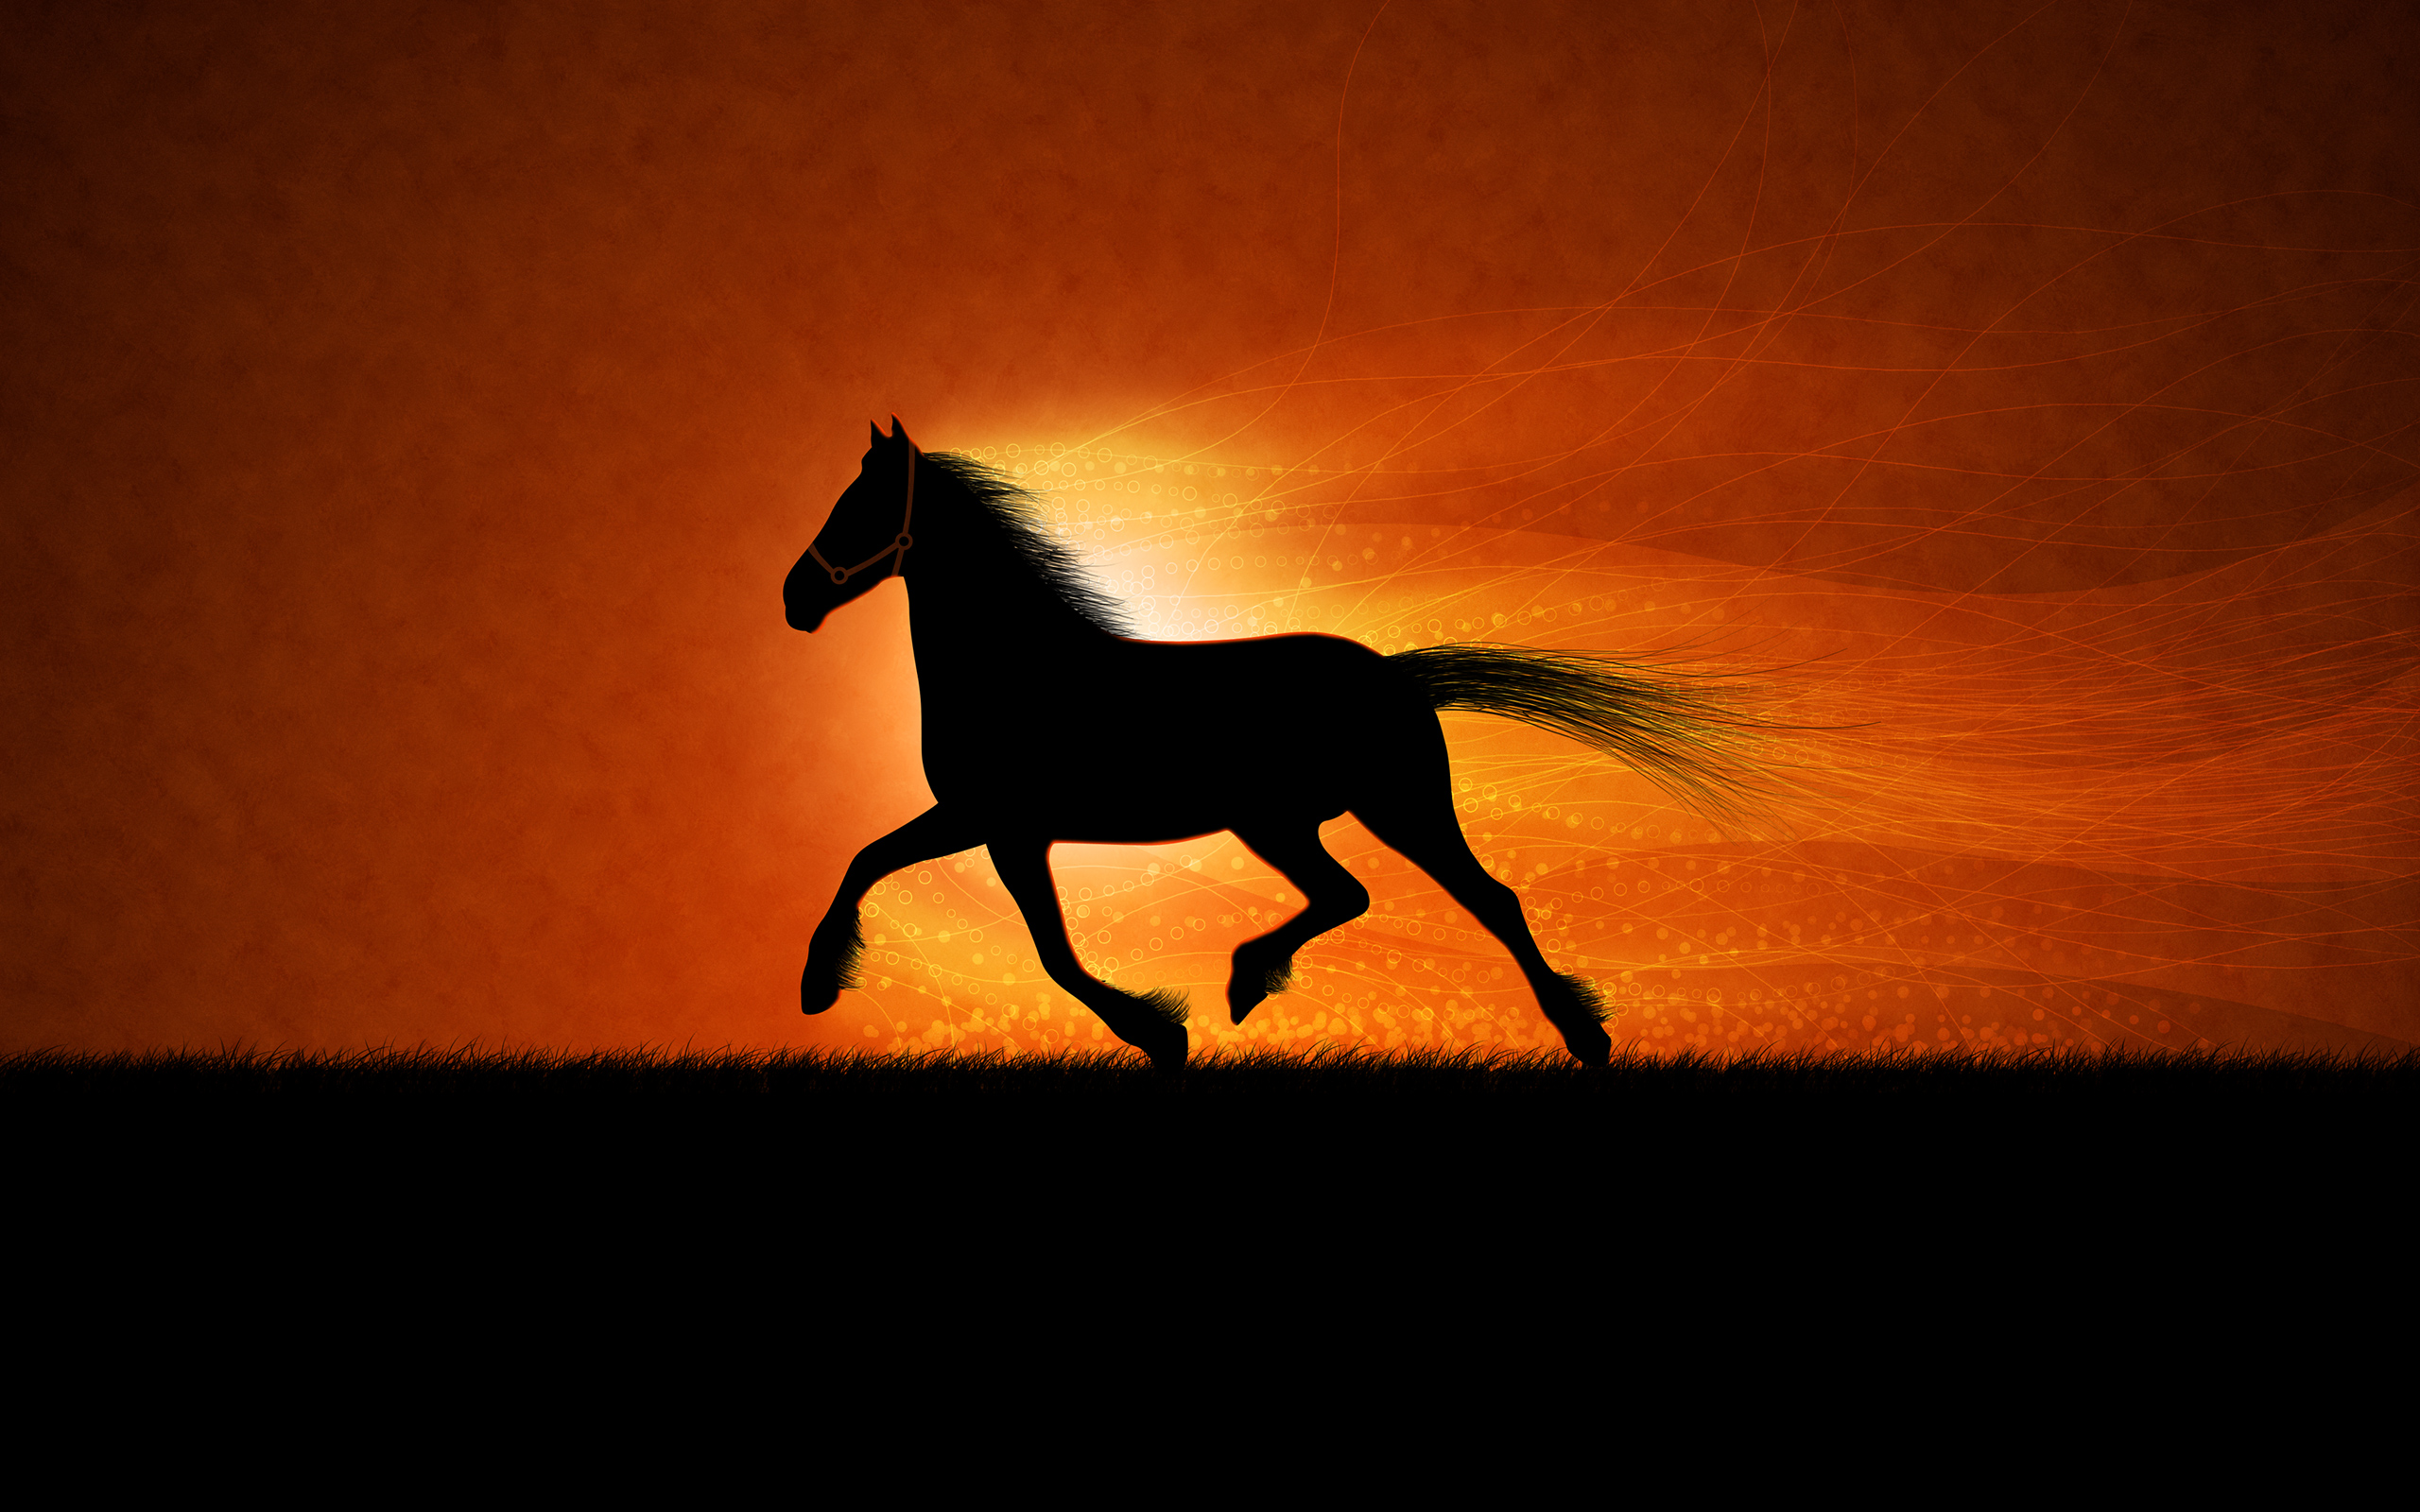 48 Running Horses Wallpaper On Wallpapersafari